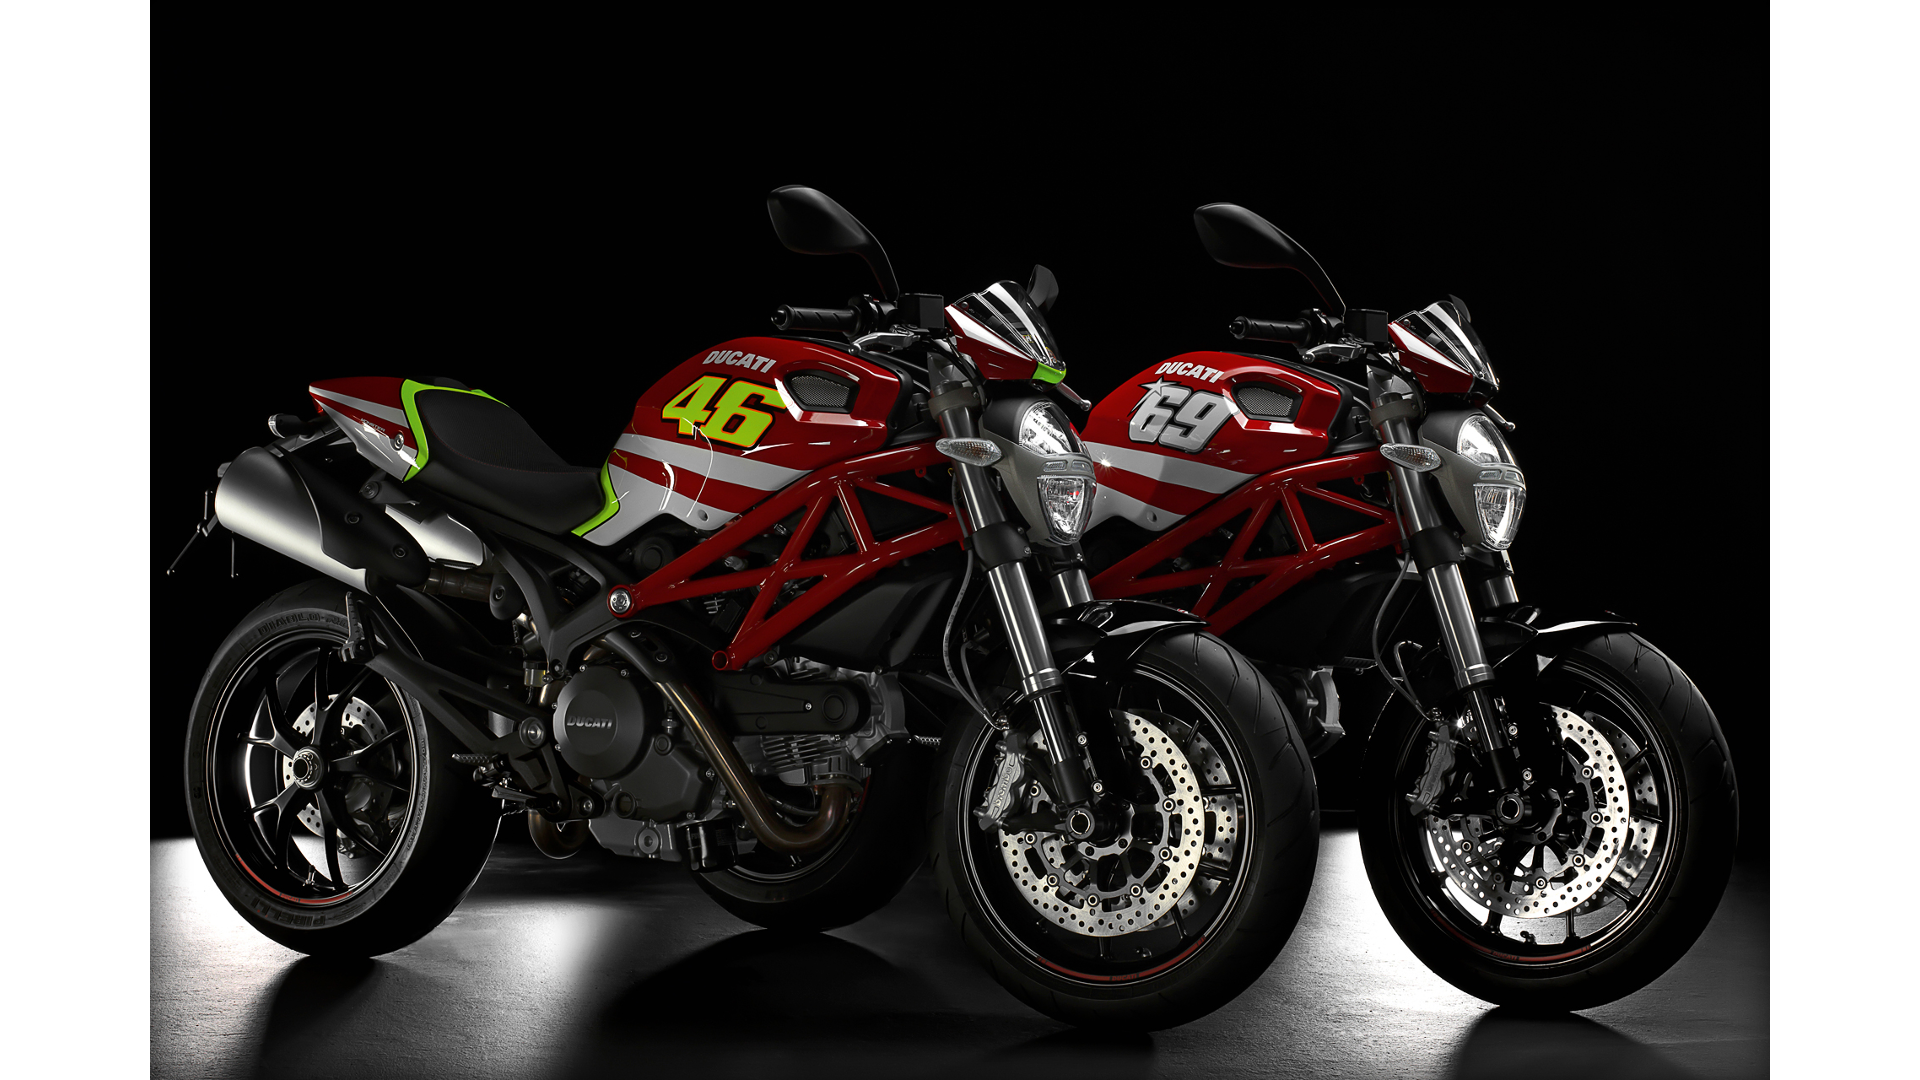 Ducati Monster 796 Corse Stripe images #146220